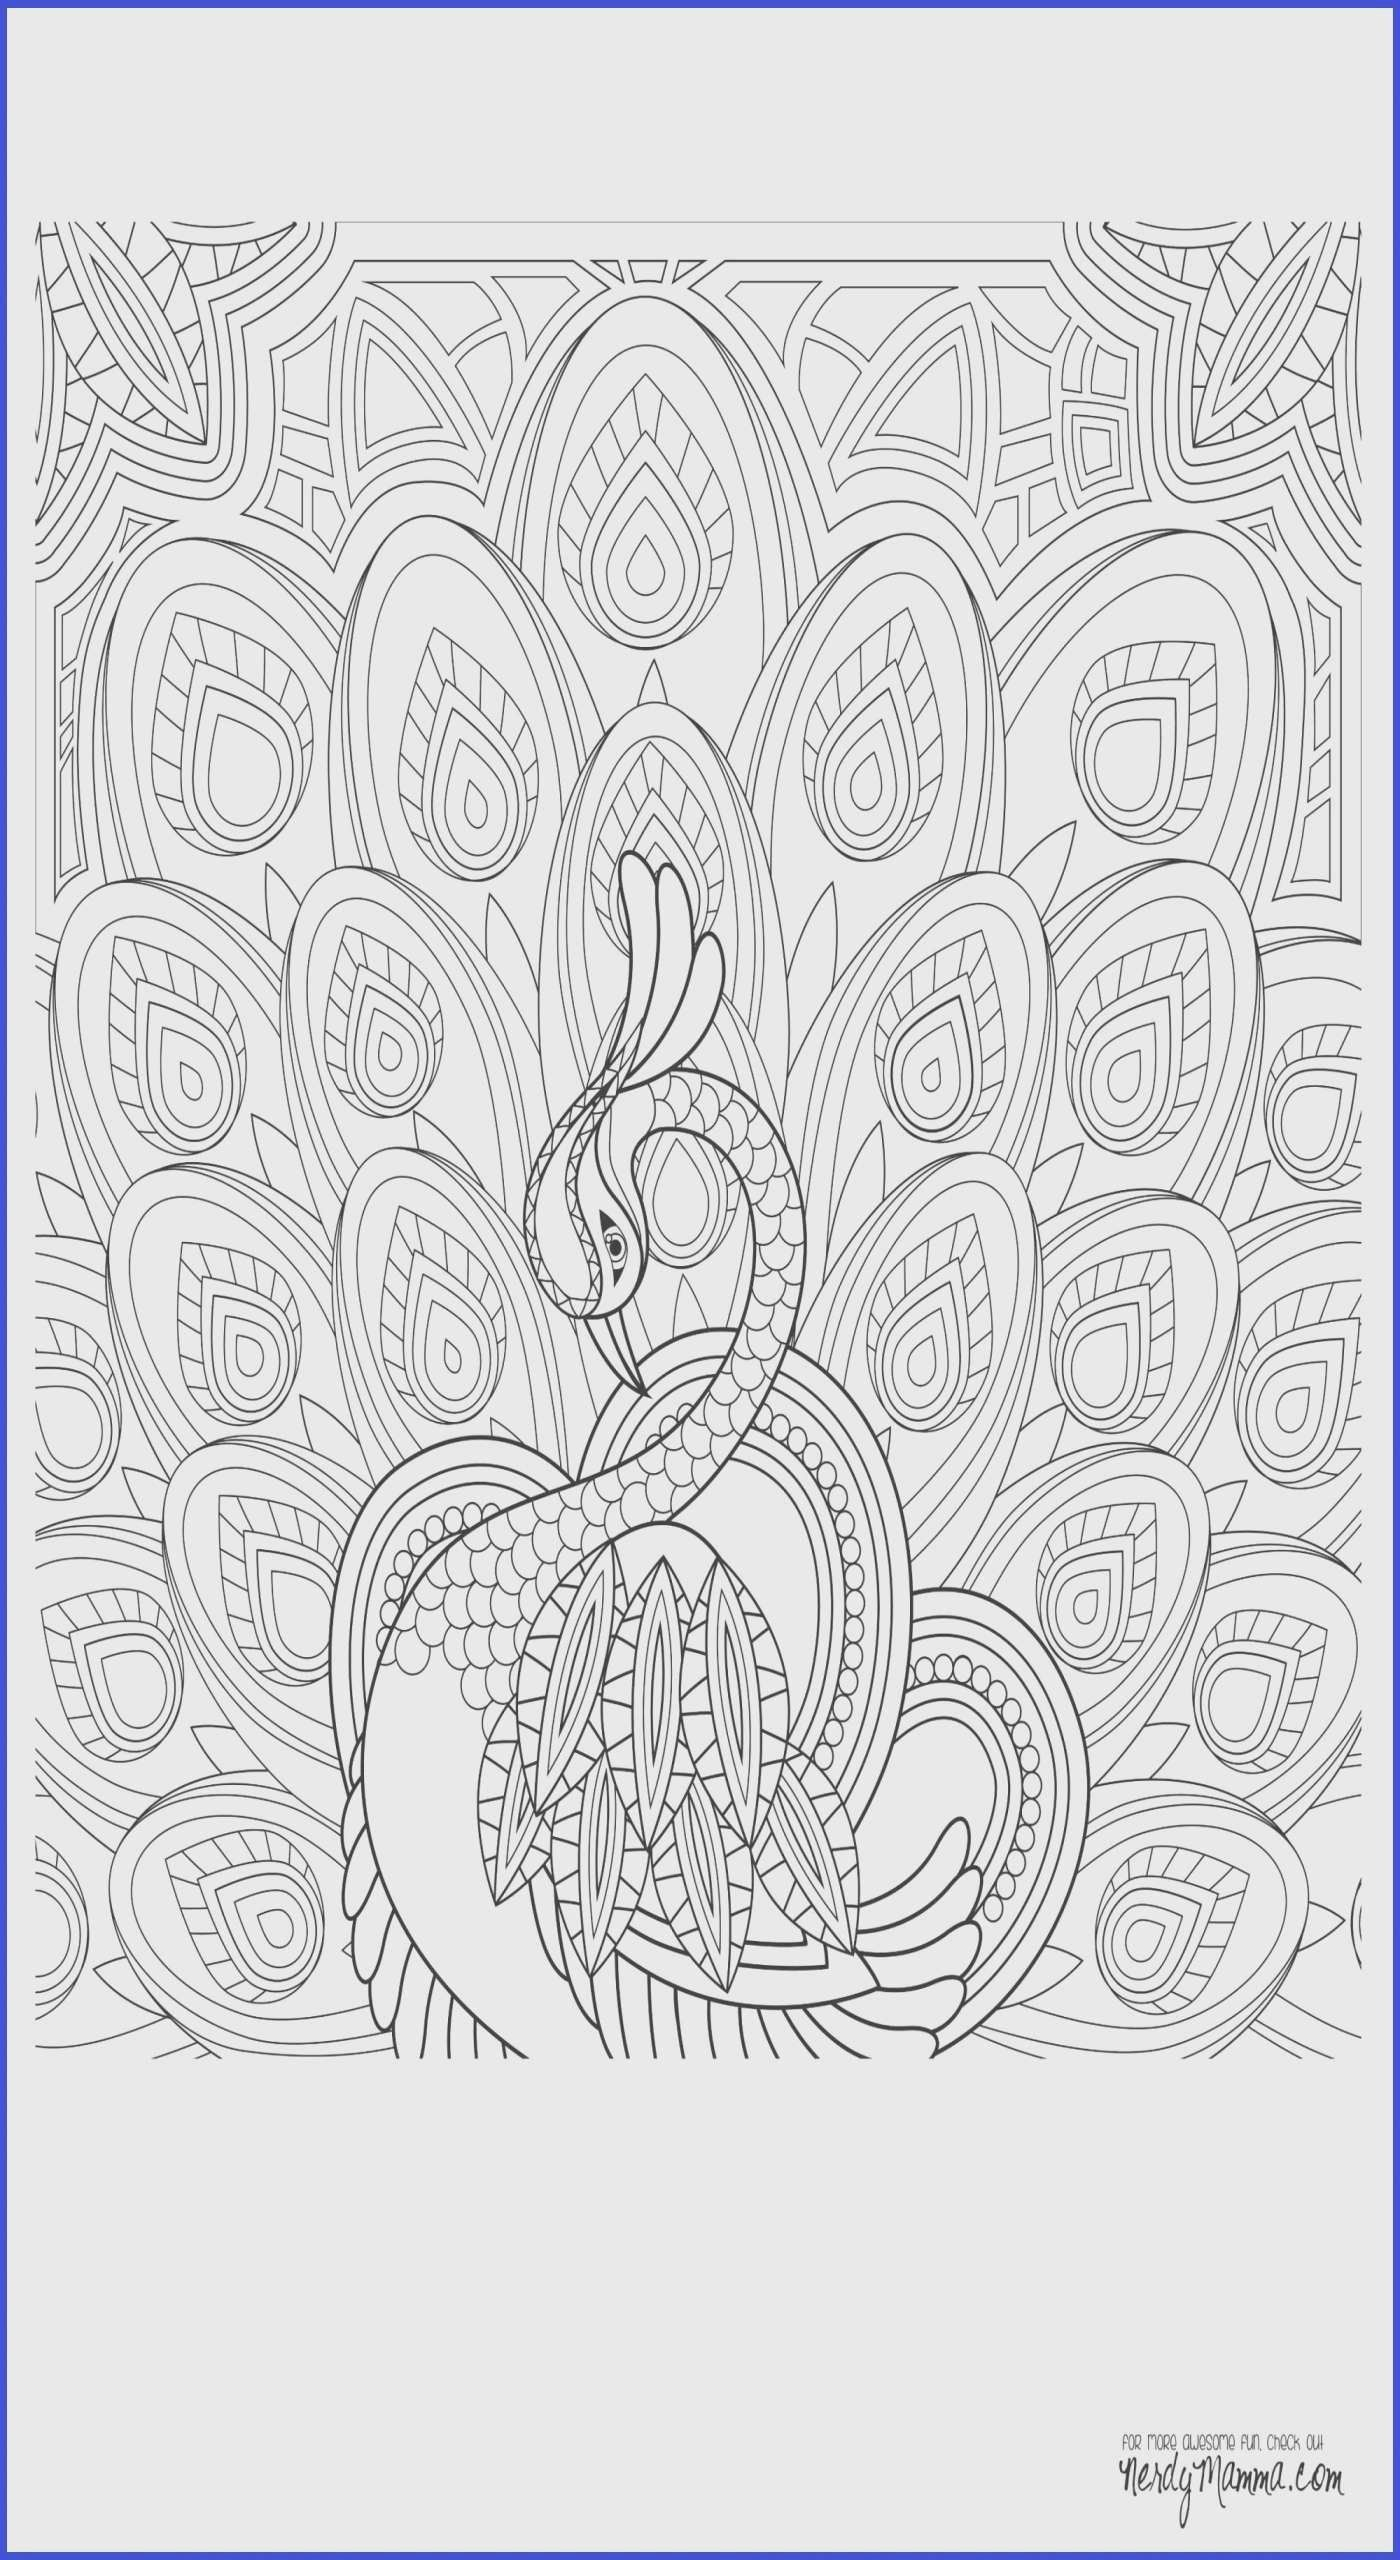 Native American Design Coloring Pages Elegant Fall To Color Printable Toiyeuemz In 2020 Detailed Coloring Pages Pokemon Coloring Pages Mermaid Coloring Pages